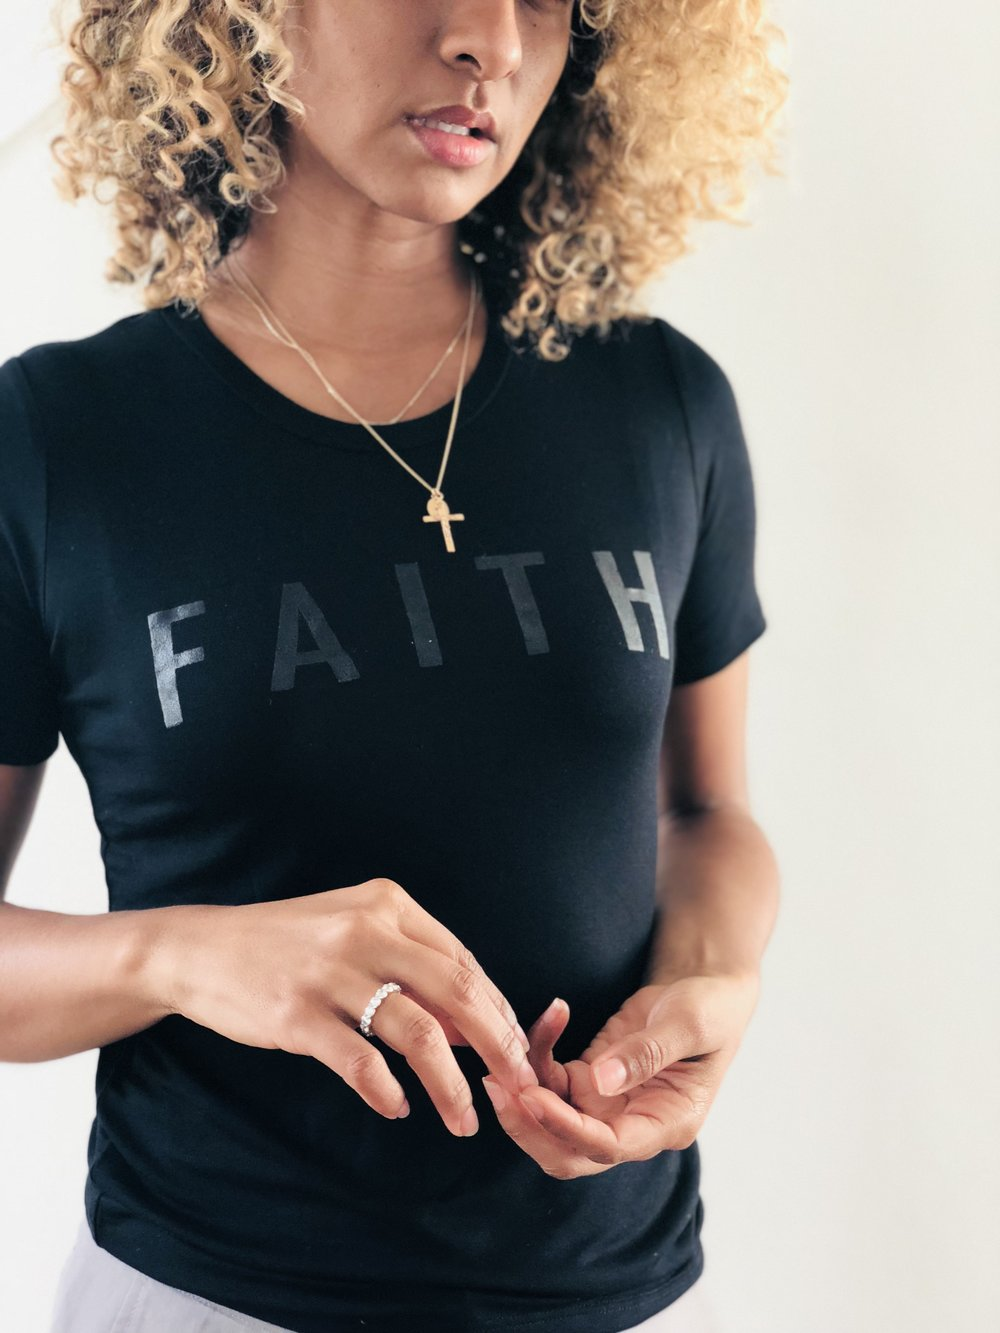 (PLACEHOLDER FOR FAITH TEE IMAGE)